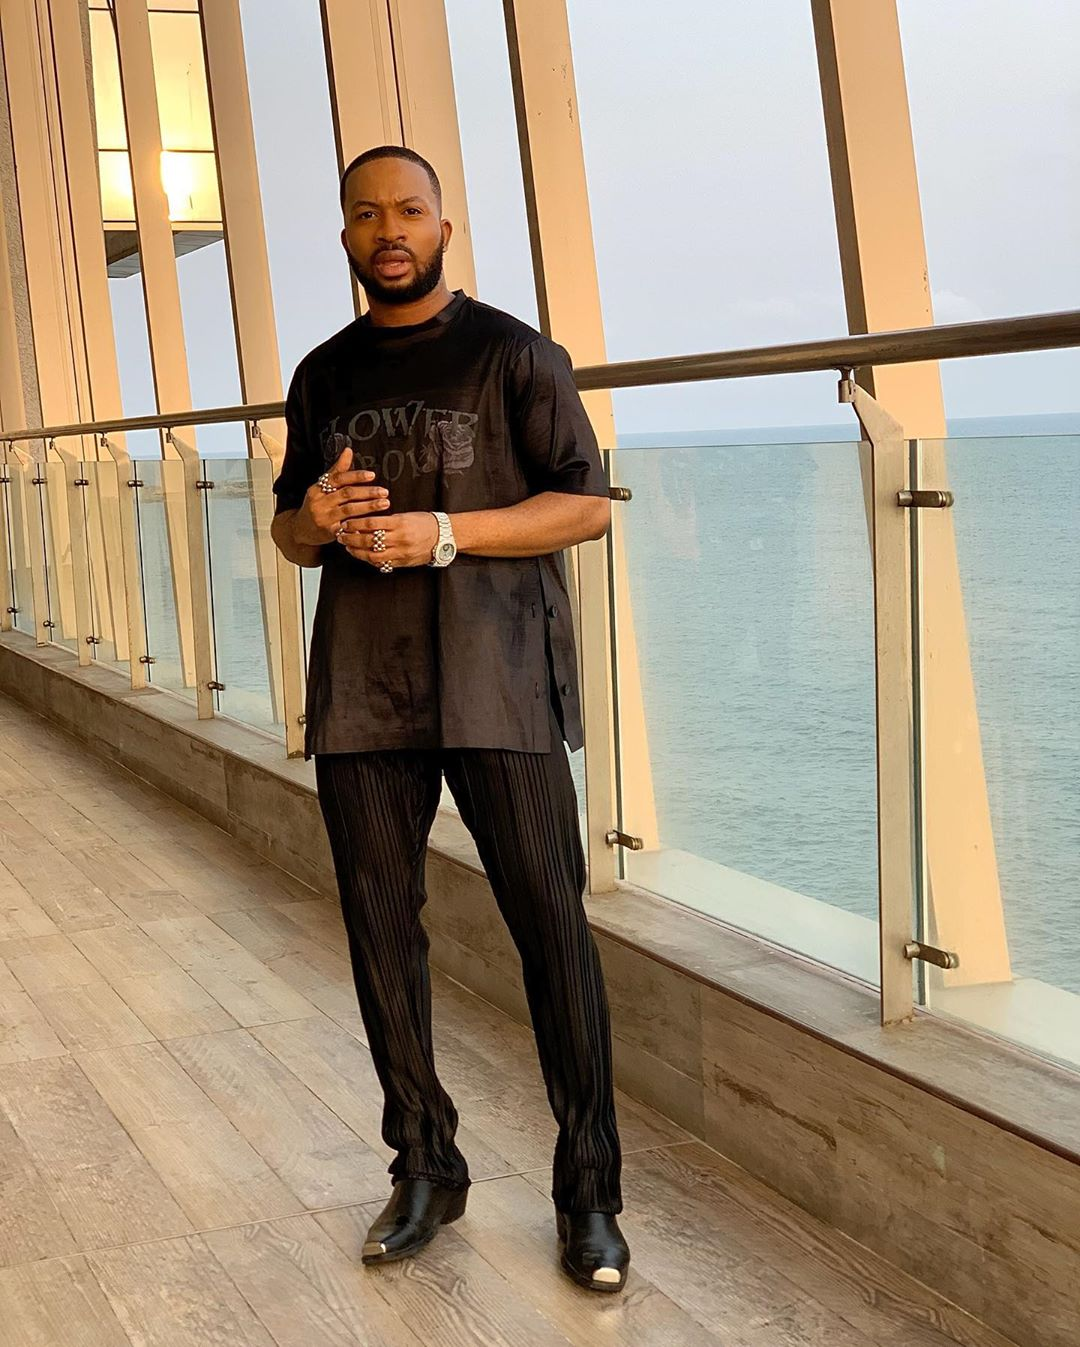 africa-male-celebrities-best-dressed-men-africa-fashion-style-rave